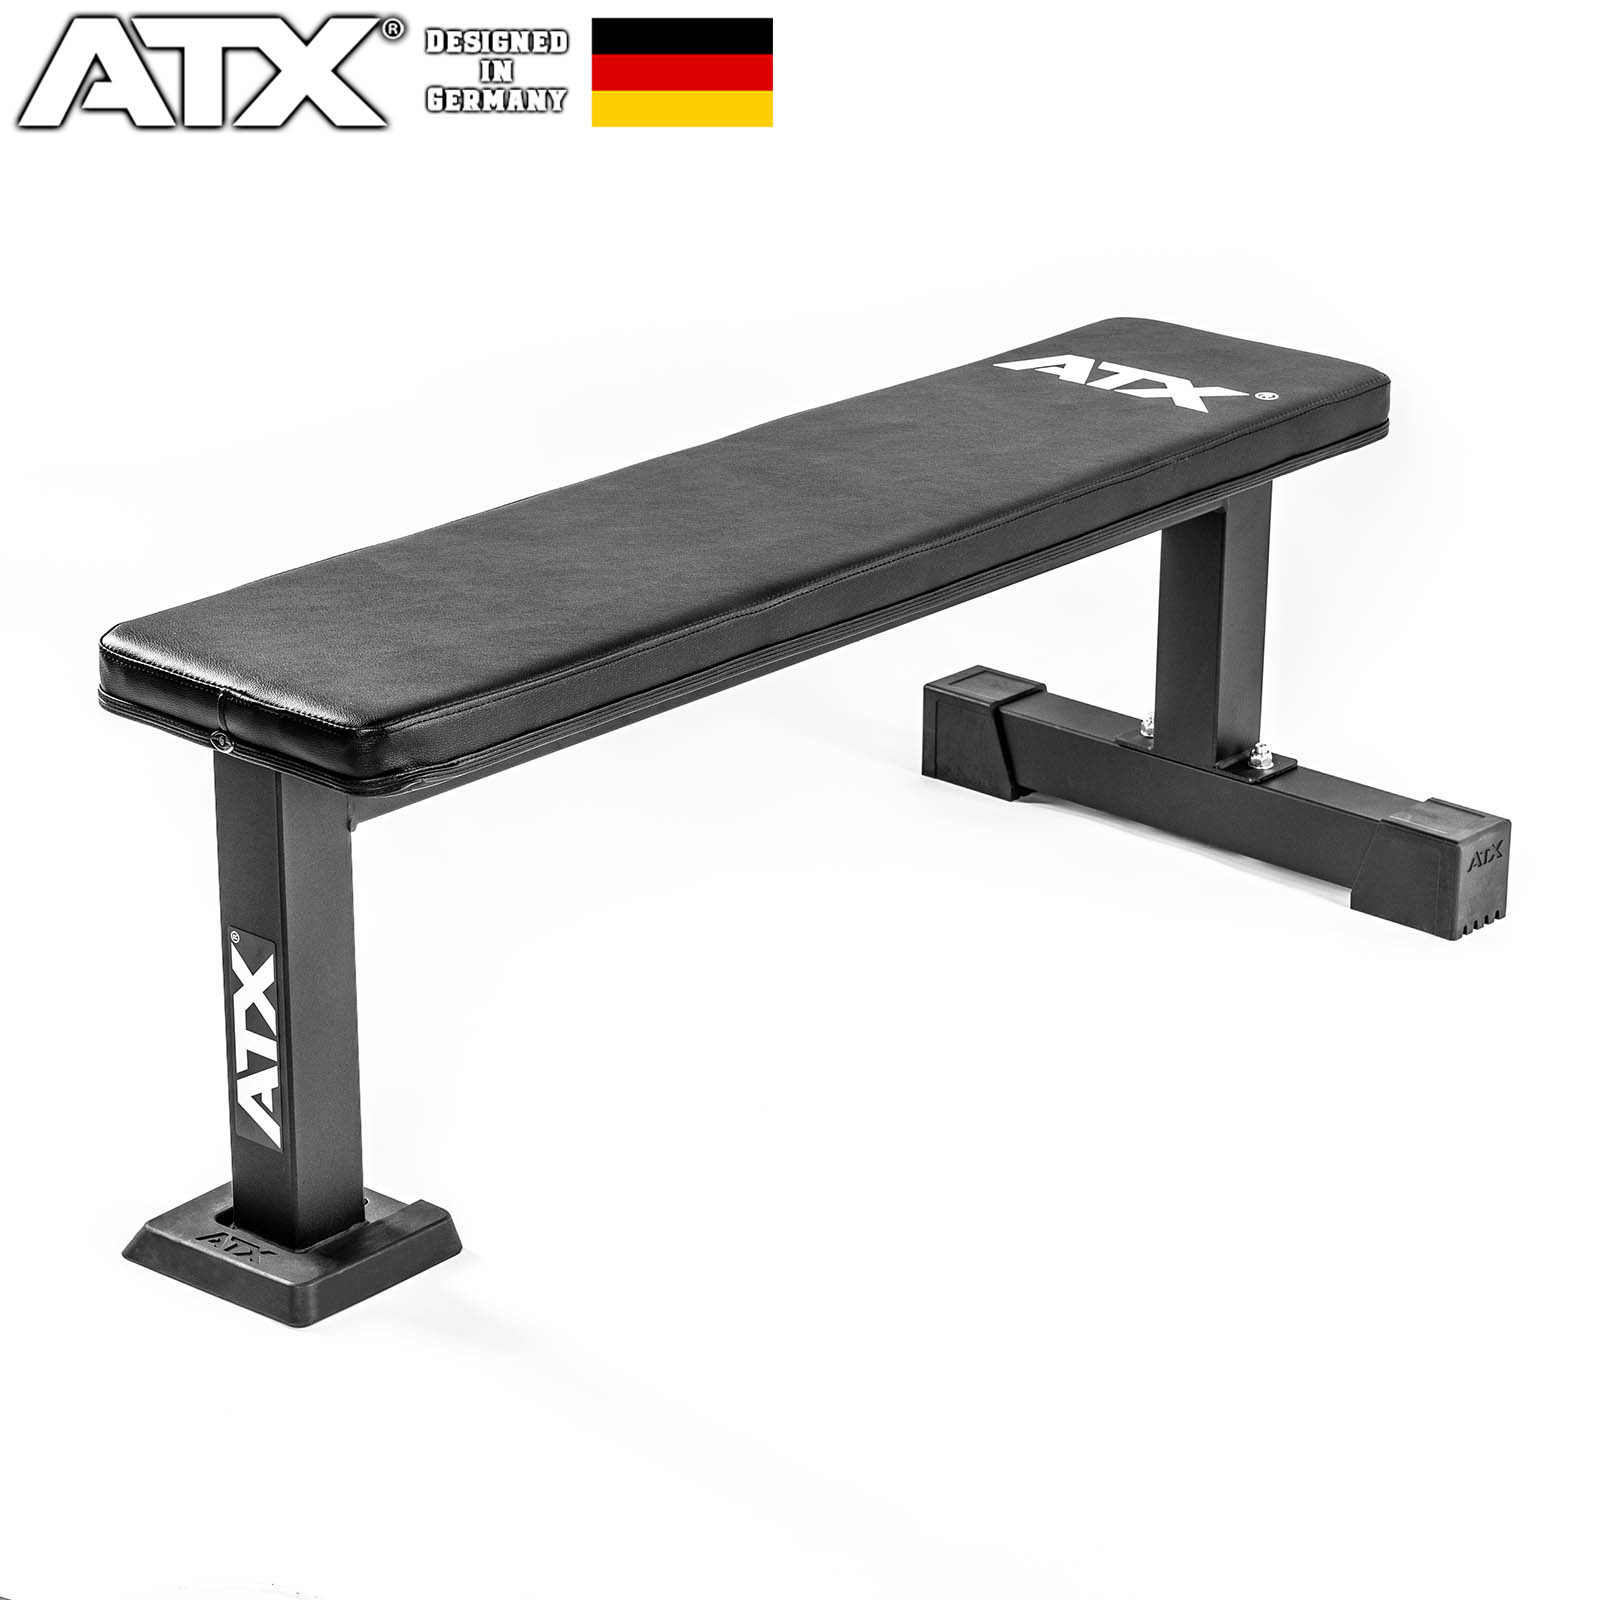 atx competition bench